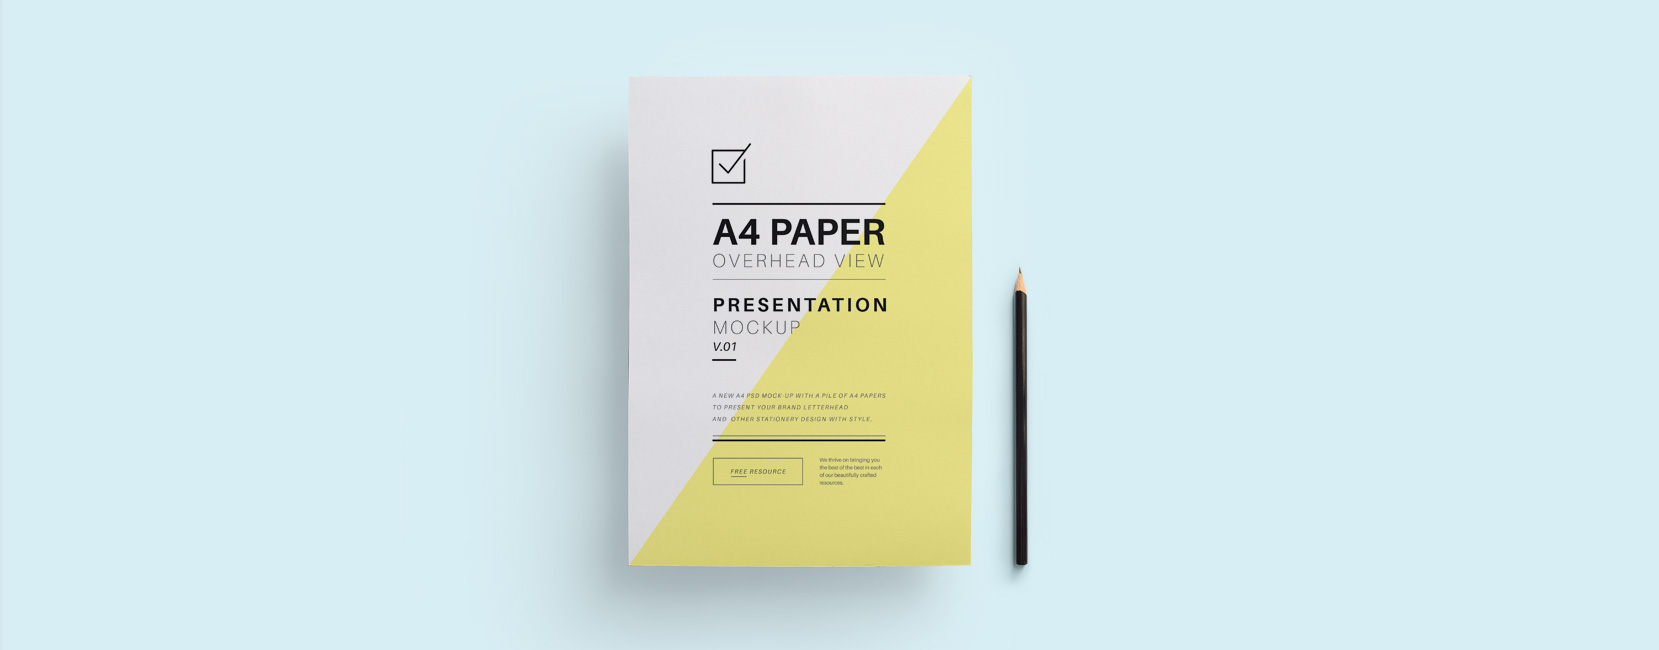 A4 Paper Overhead